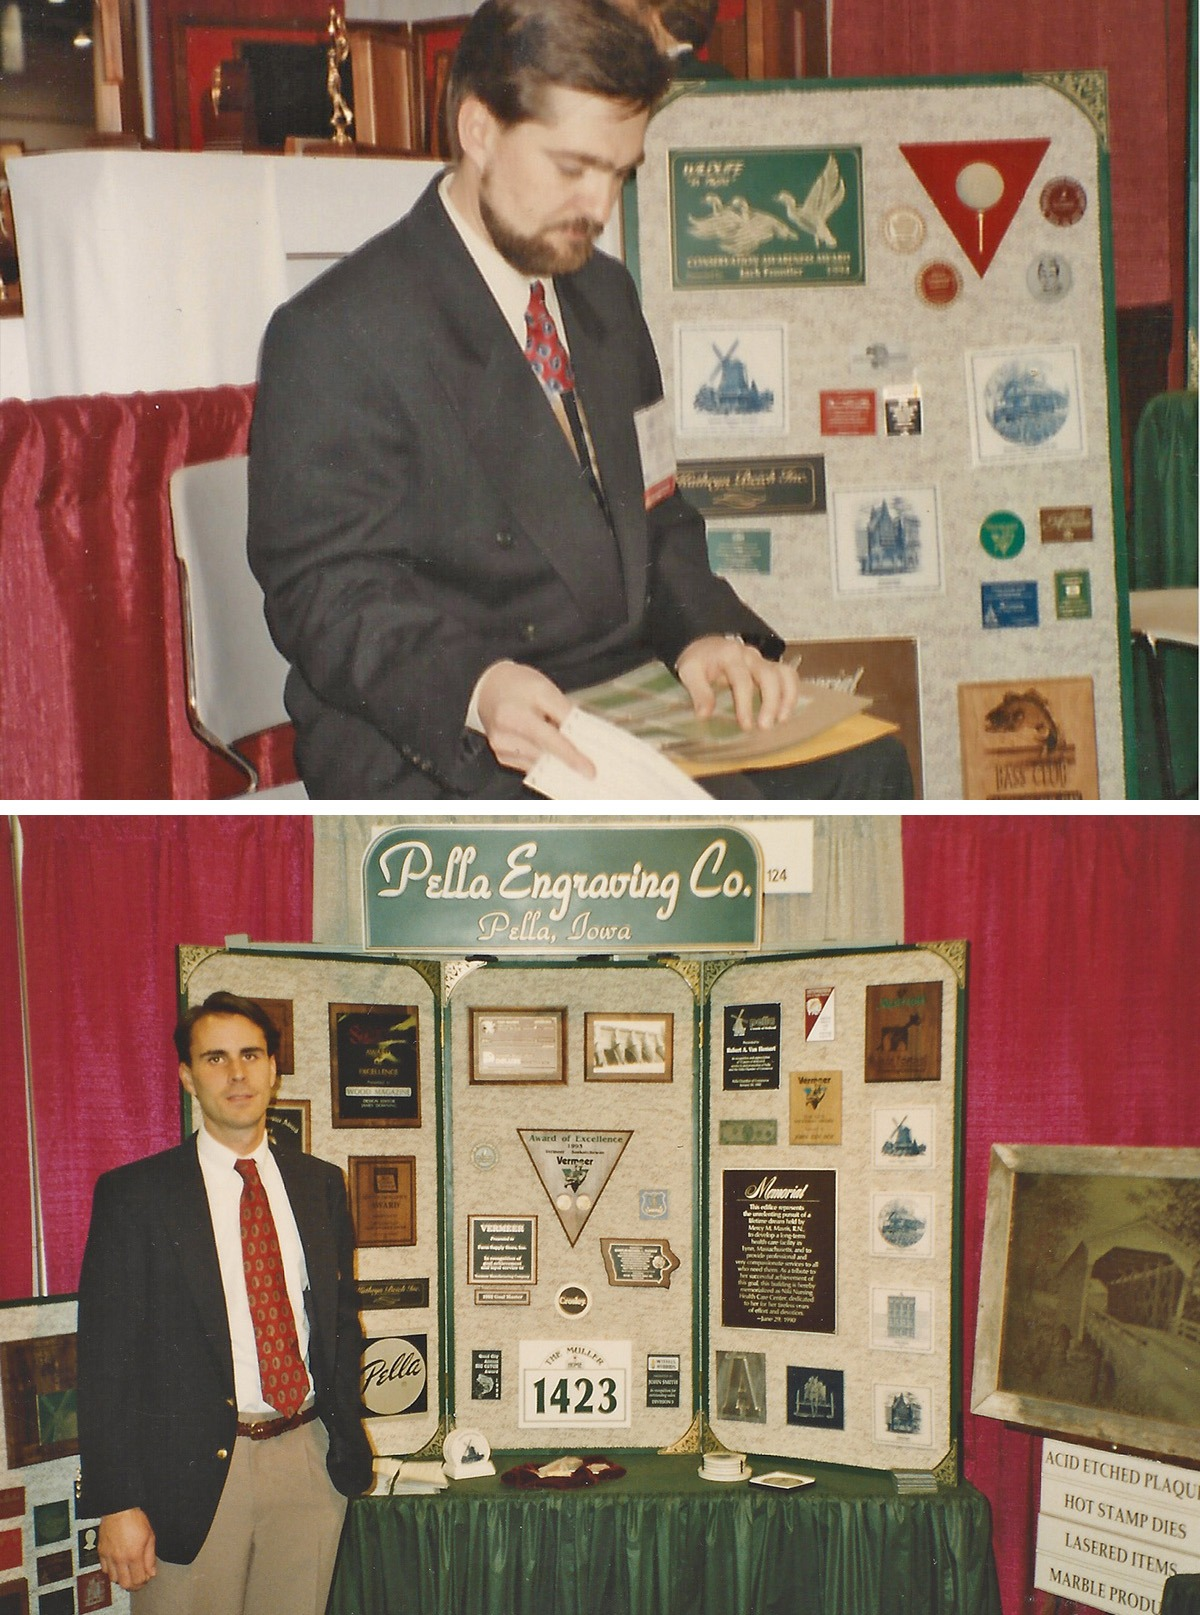 Bruce Van Wyk (top) and Jeff Vroom (bottom) working their first trade show.